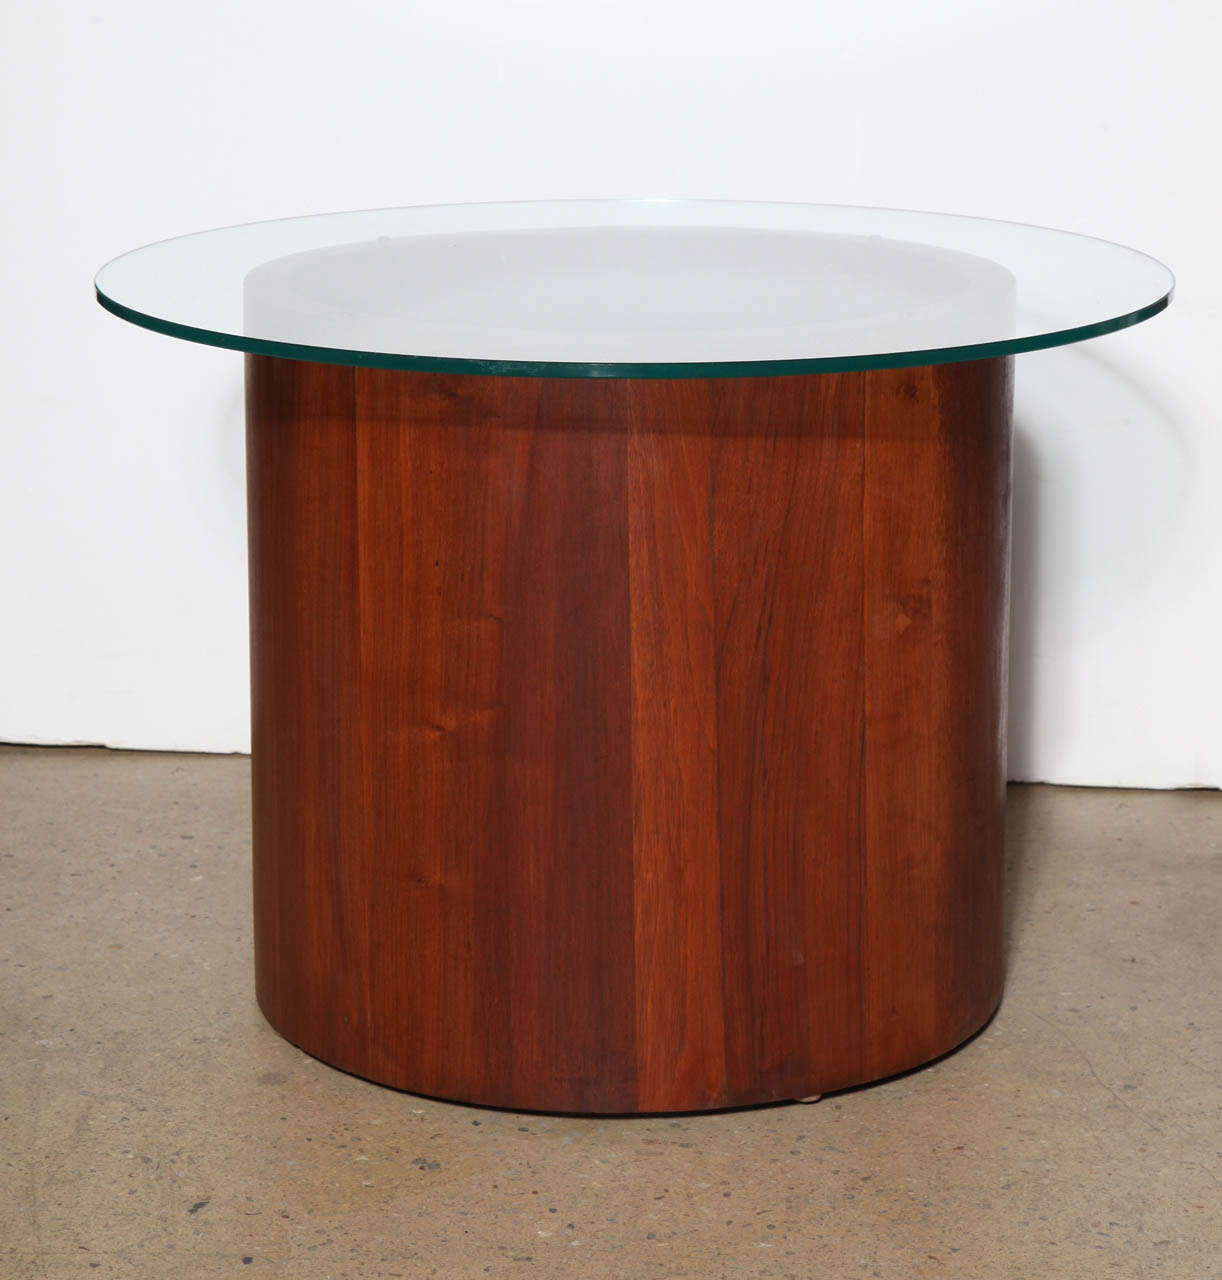 circular furniture. American Mid Century Modern Solid Teak Coffee Table With Circular Glass Top By Lane Furniture. Furniture D